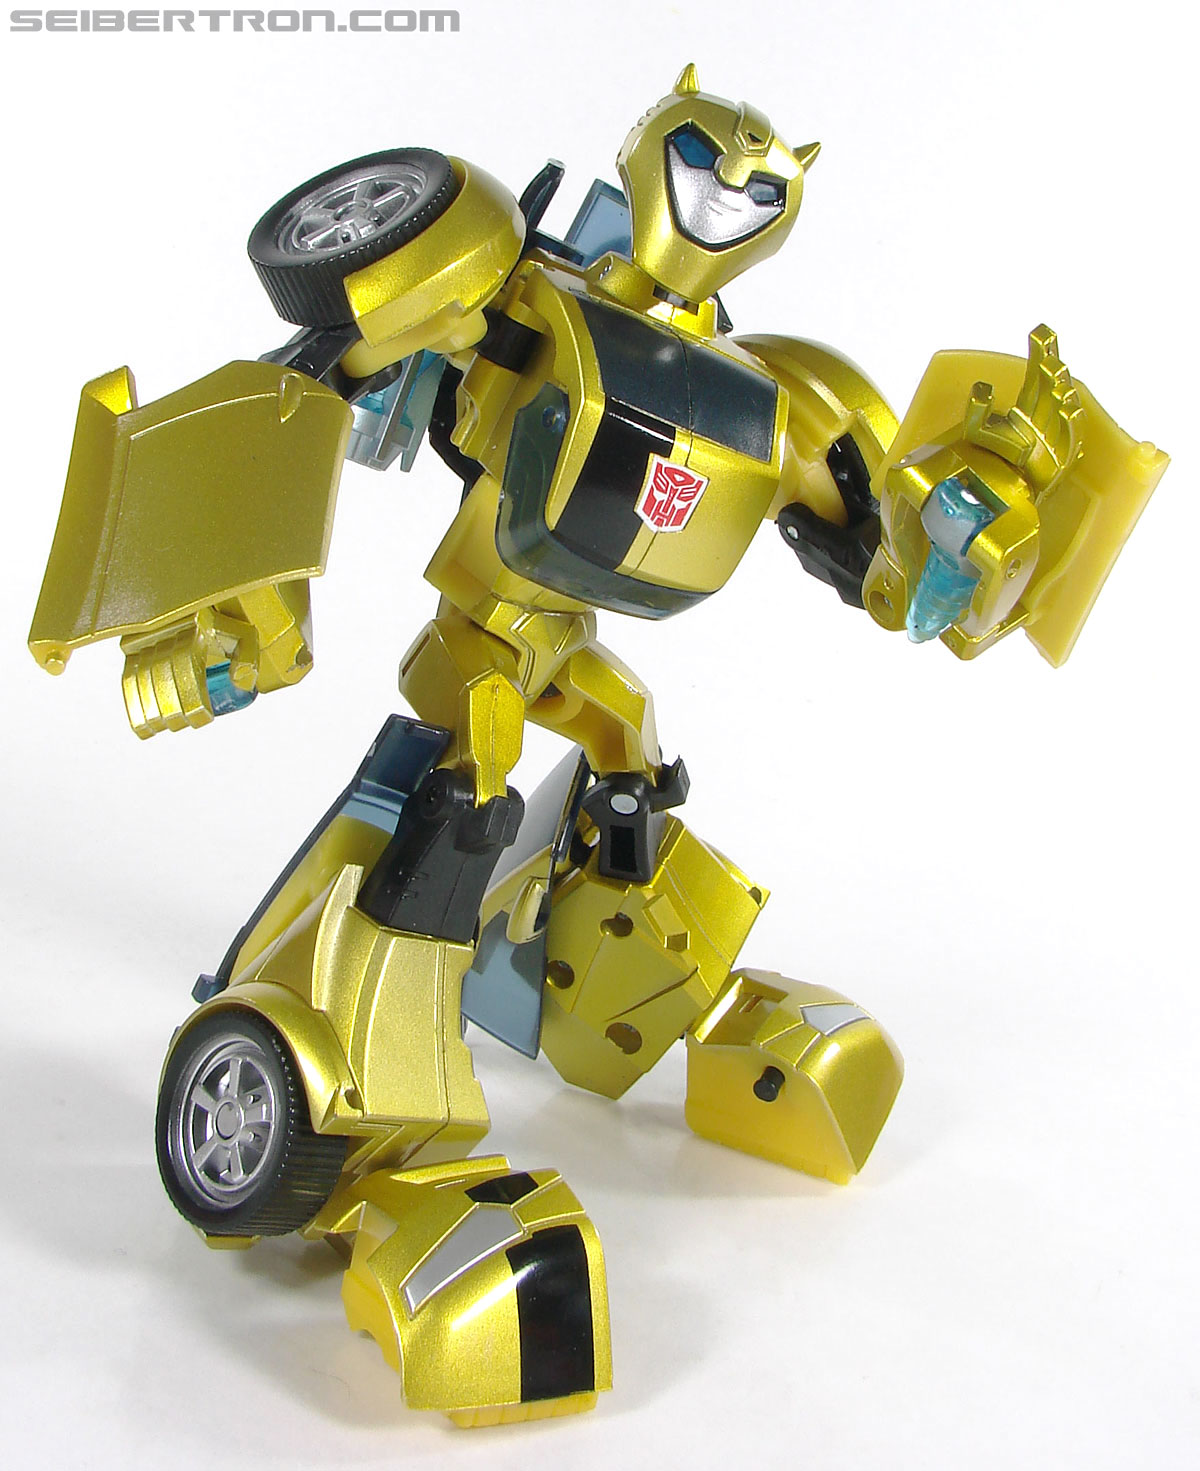 Transformers Animated Bumblebee (Image #70 of 115)